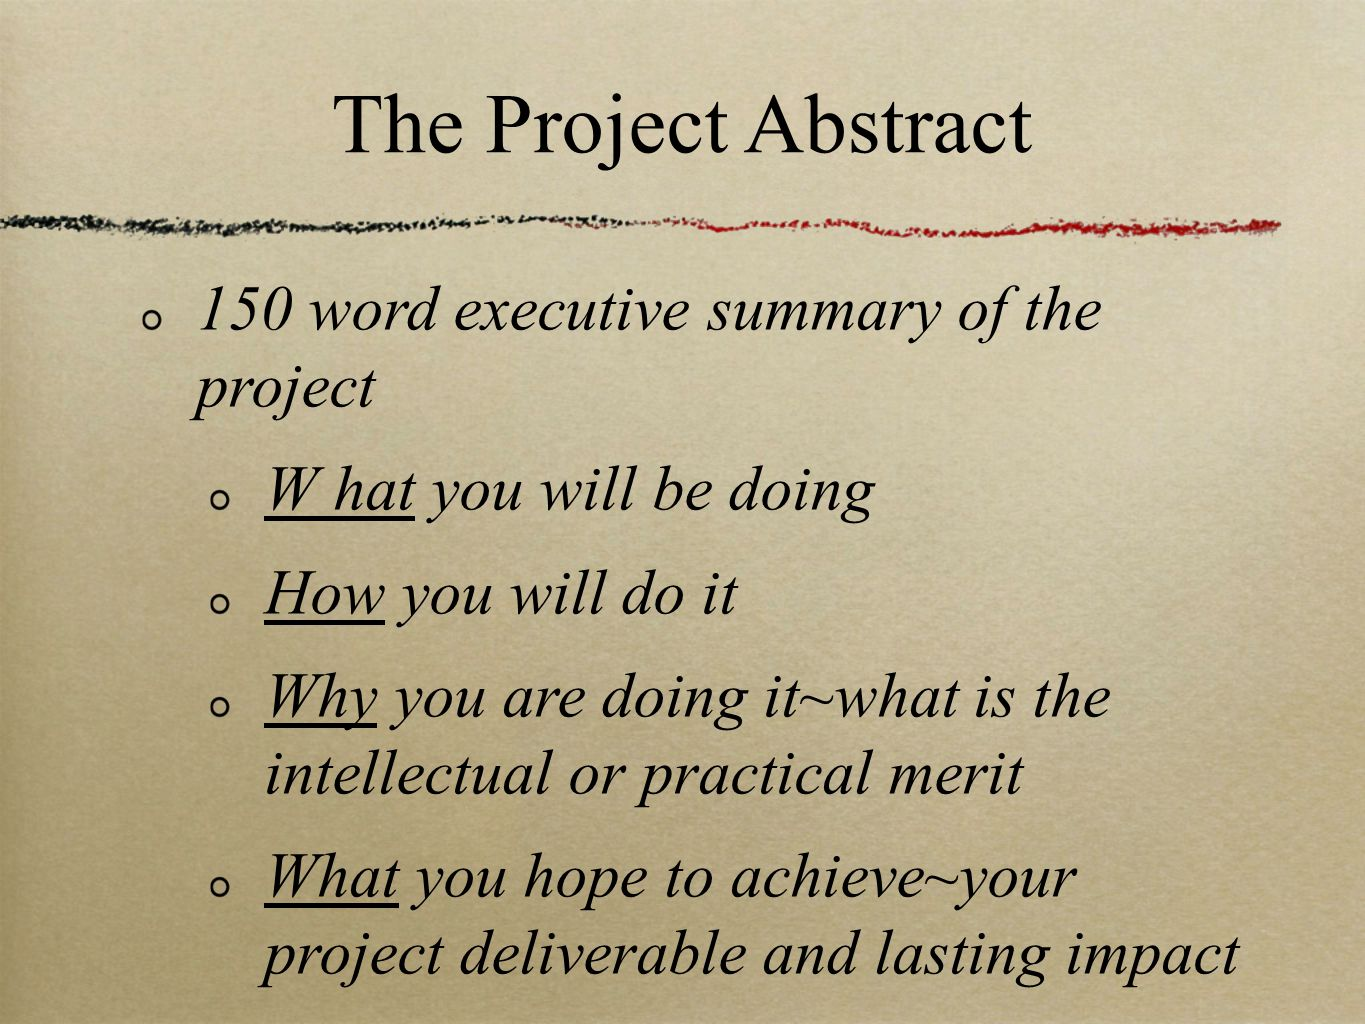 The Project Abstract 150 word executive summary of the project W hat you will be doing How you will do it Why you are doing it~what is the intellectual or practical merit What you hope to achieve~your project deliverable and lasting impact